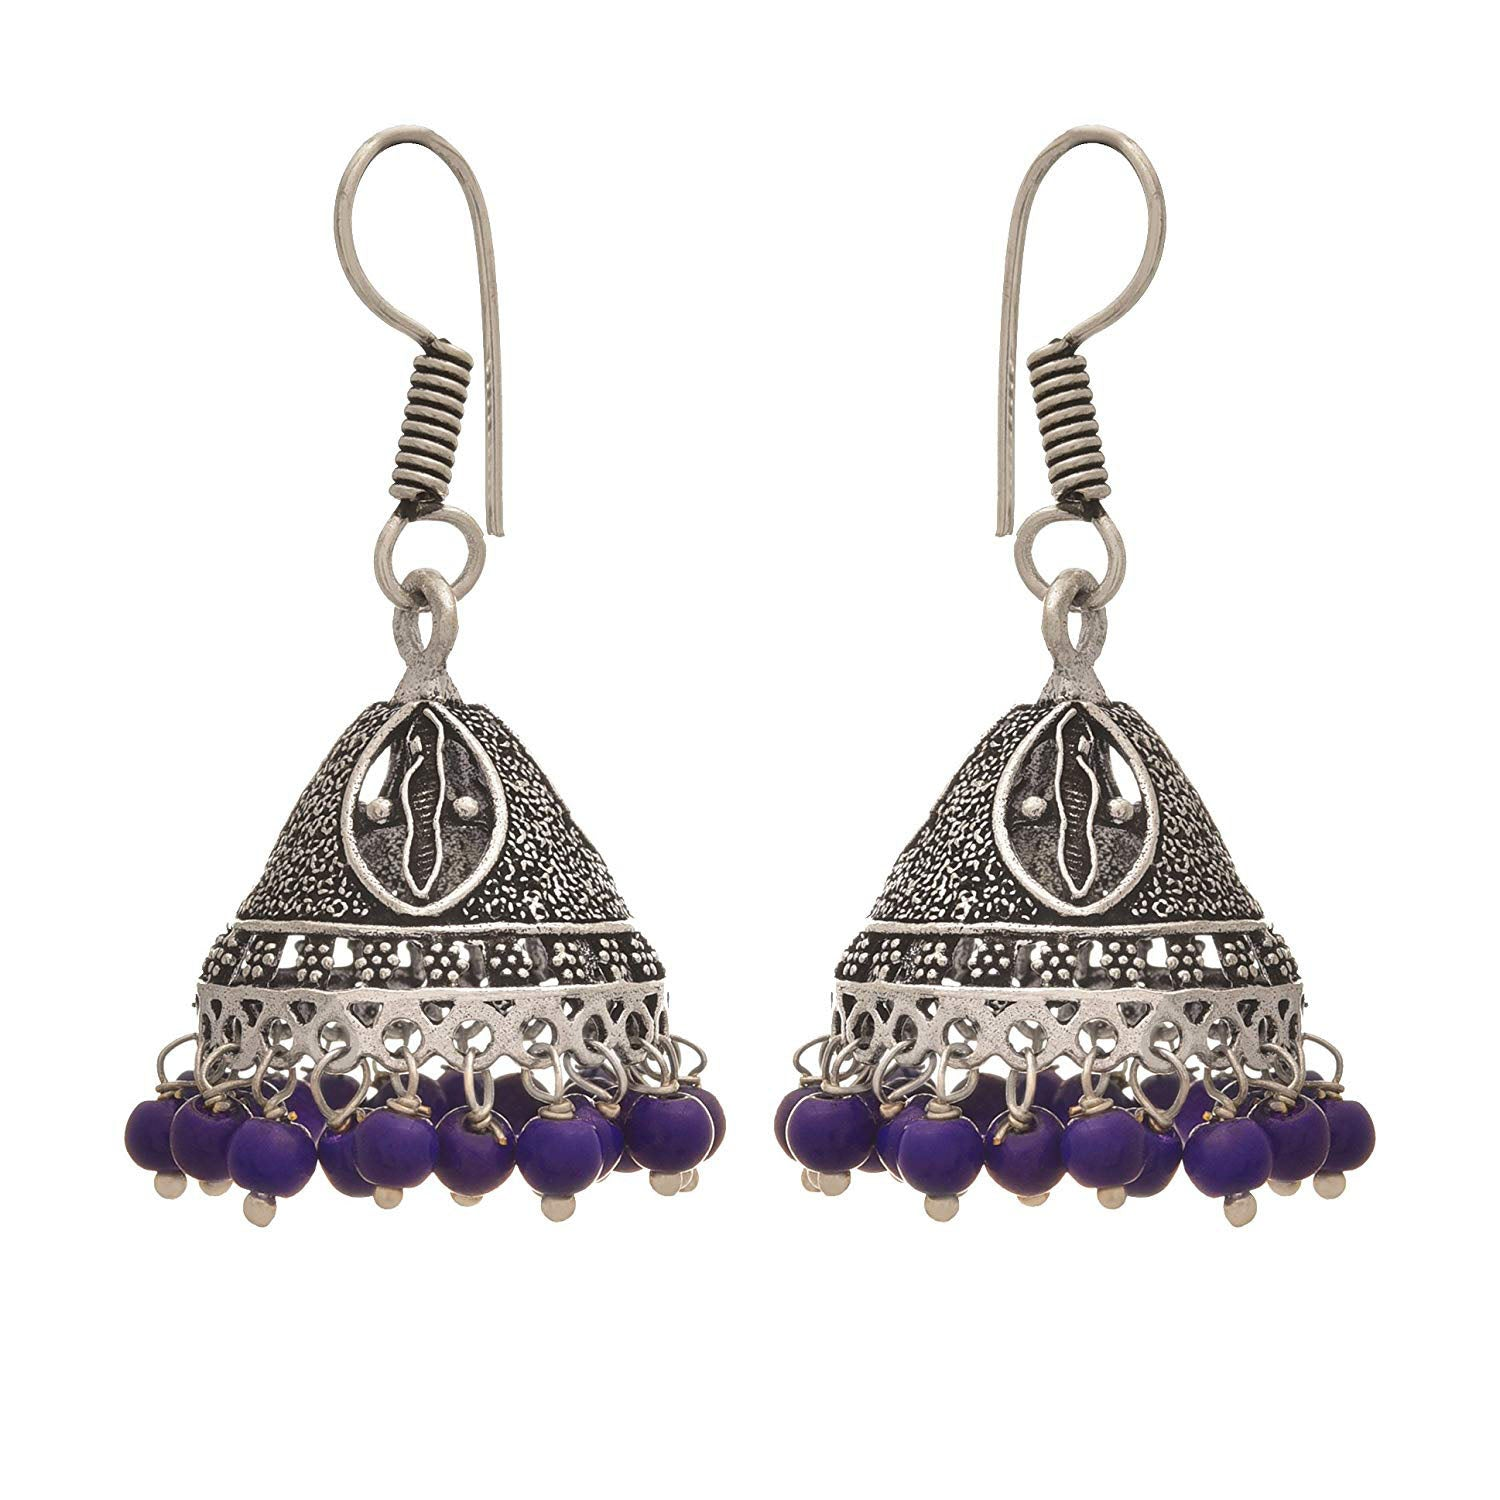 Traditional Ethnic Handmade German Silver Plated Oxidised Bead Designer Jhmki Earring For Women & Girls.